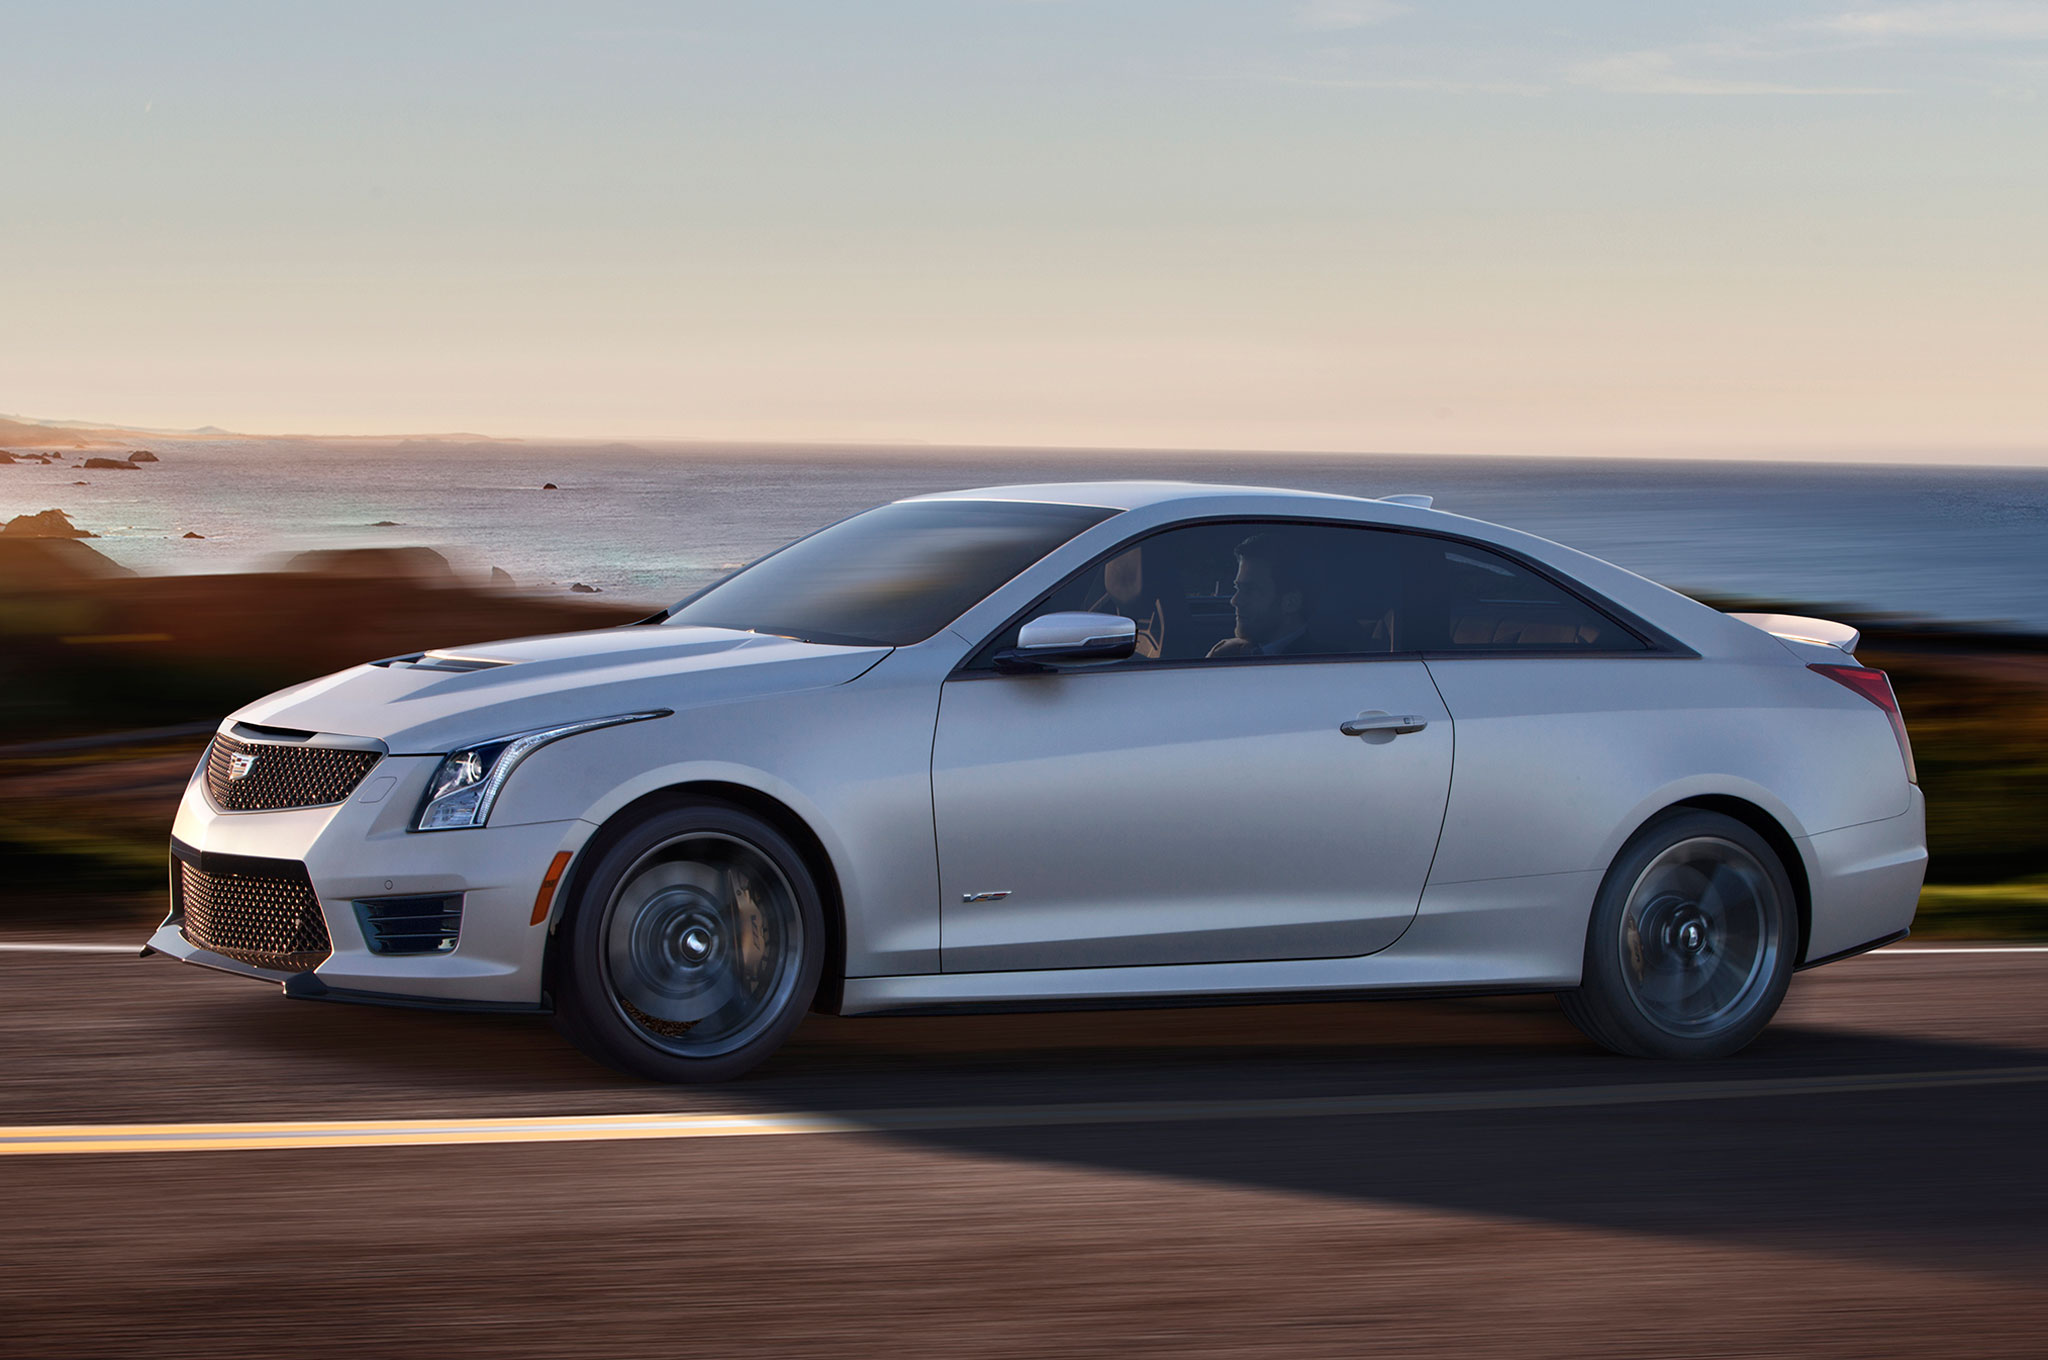 2016 Cadillac Ats V Performance Test (View 6 of 18)